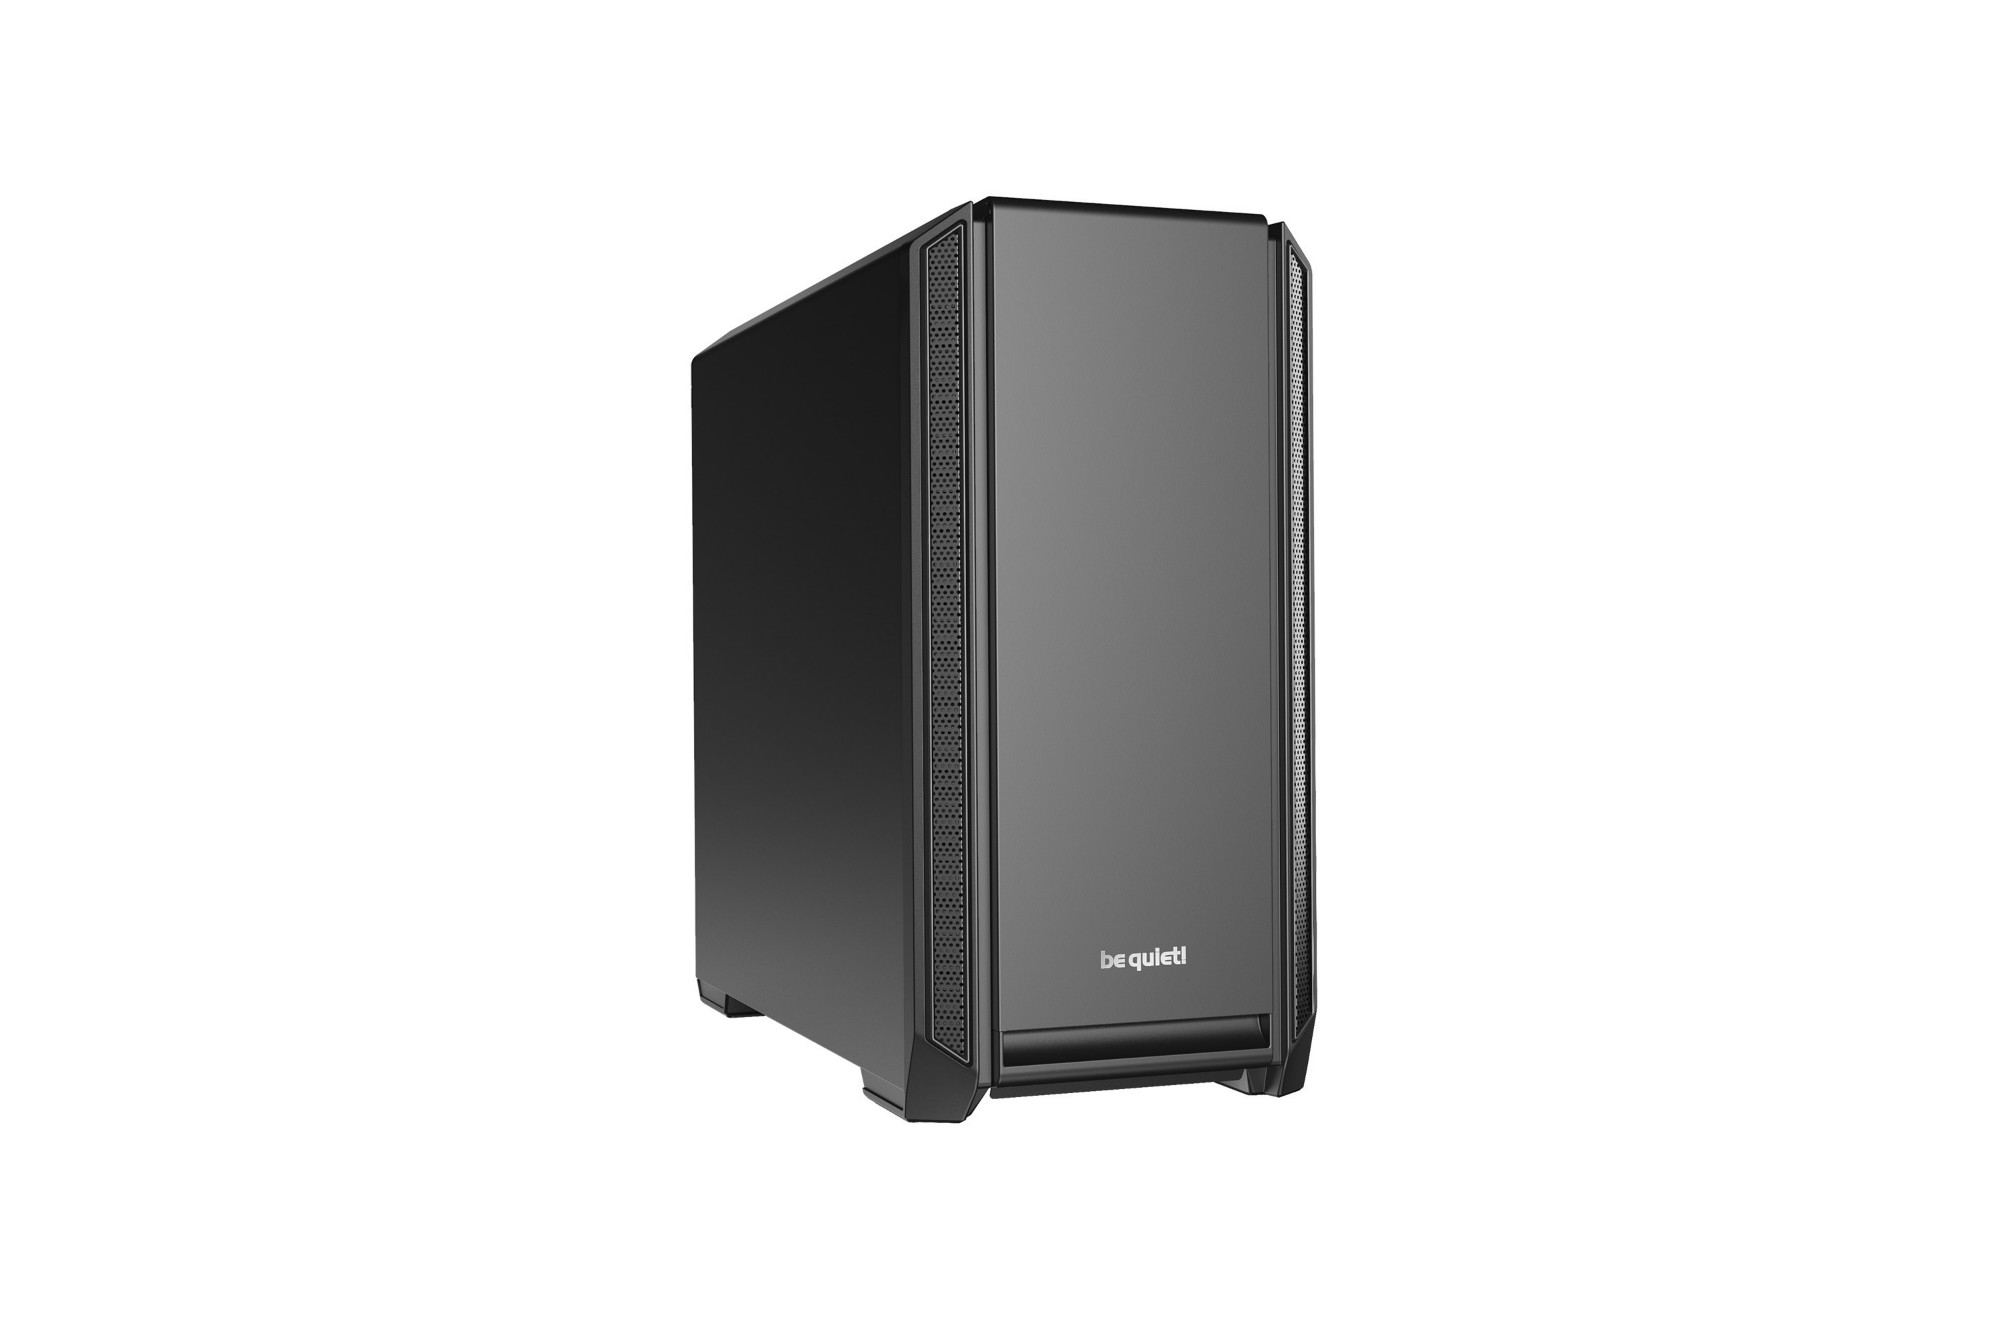 BE QUIET! BG026 SILENT BASE 601 COMPUTER CASE MIDI-TOWER BLACK